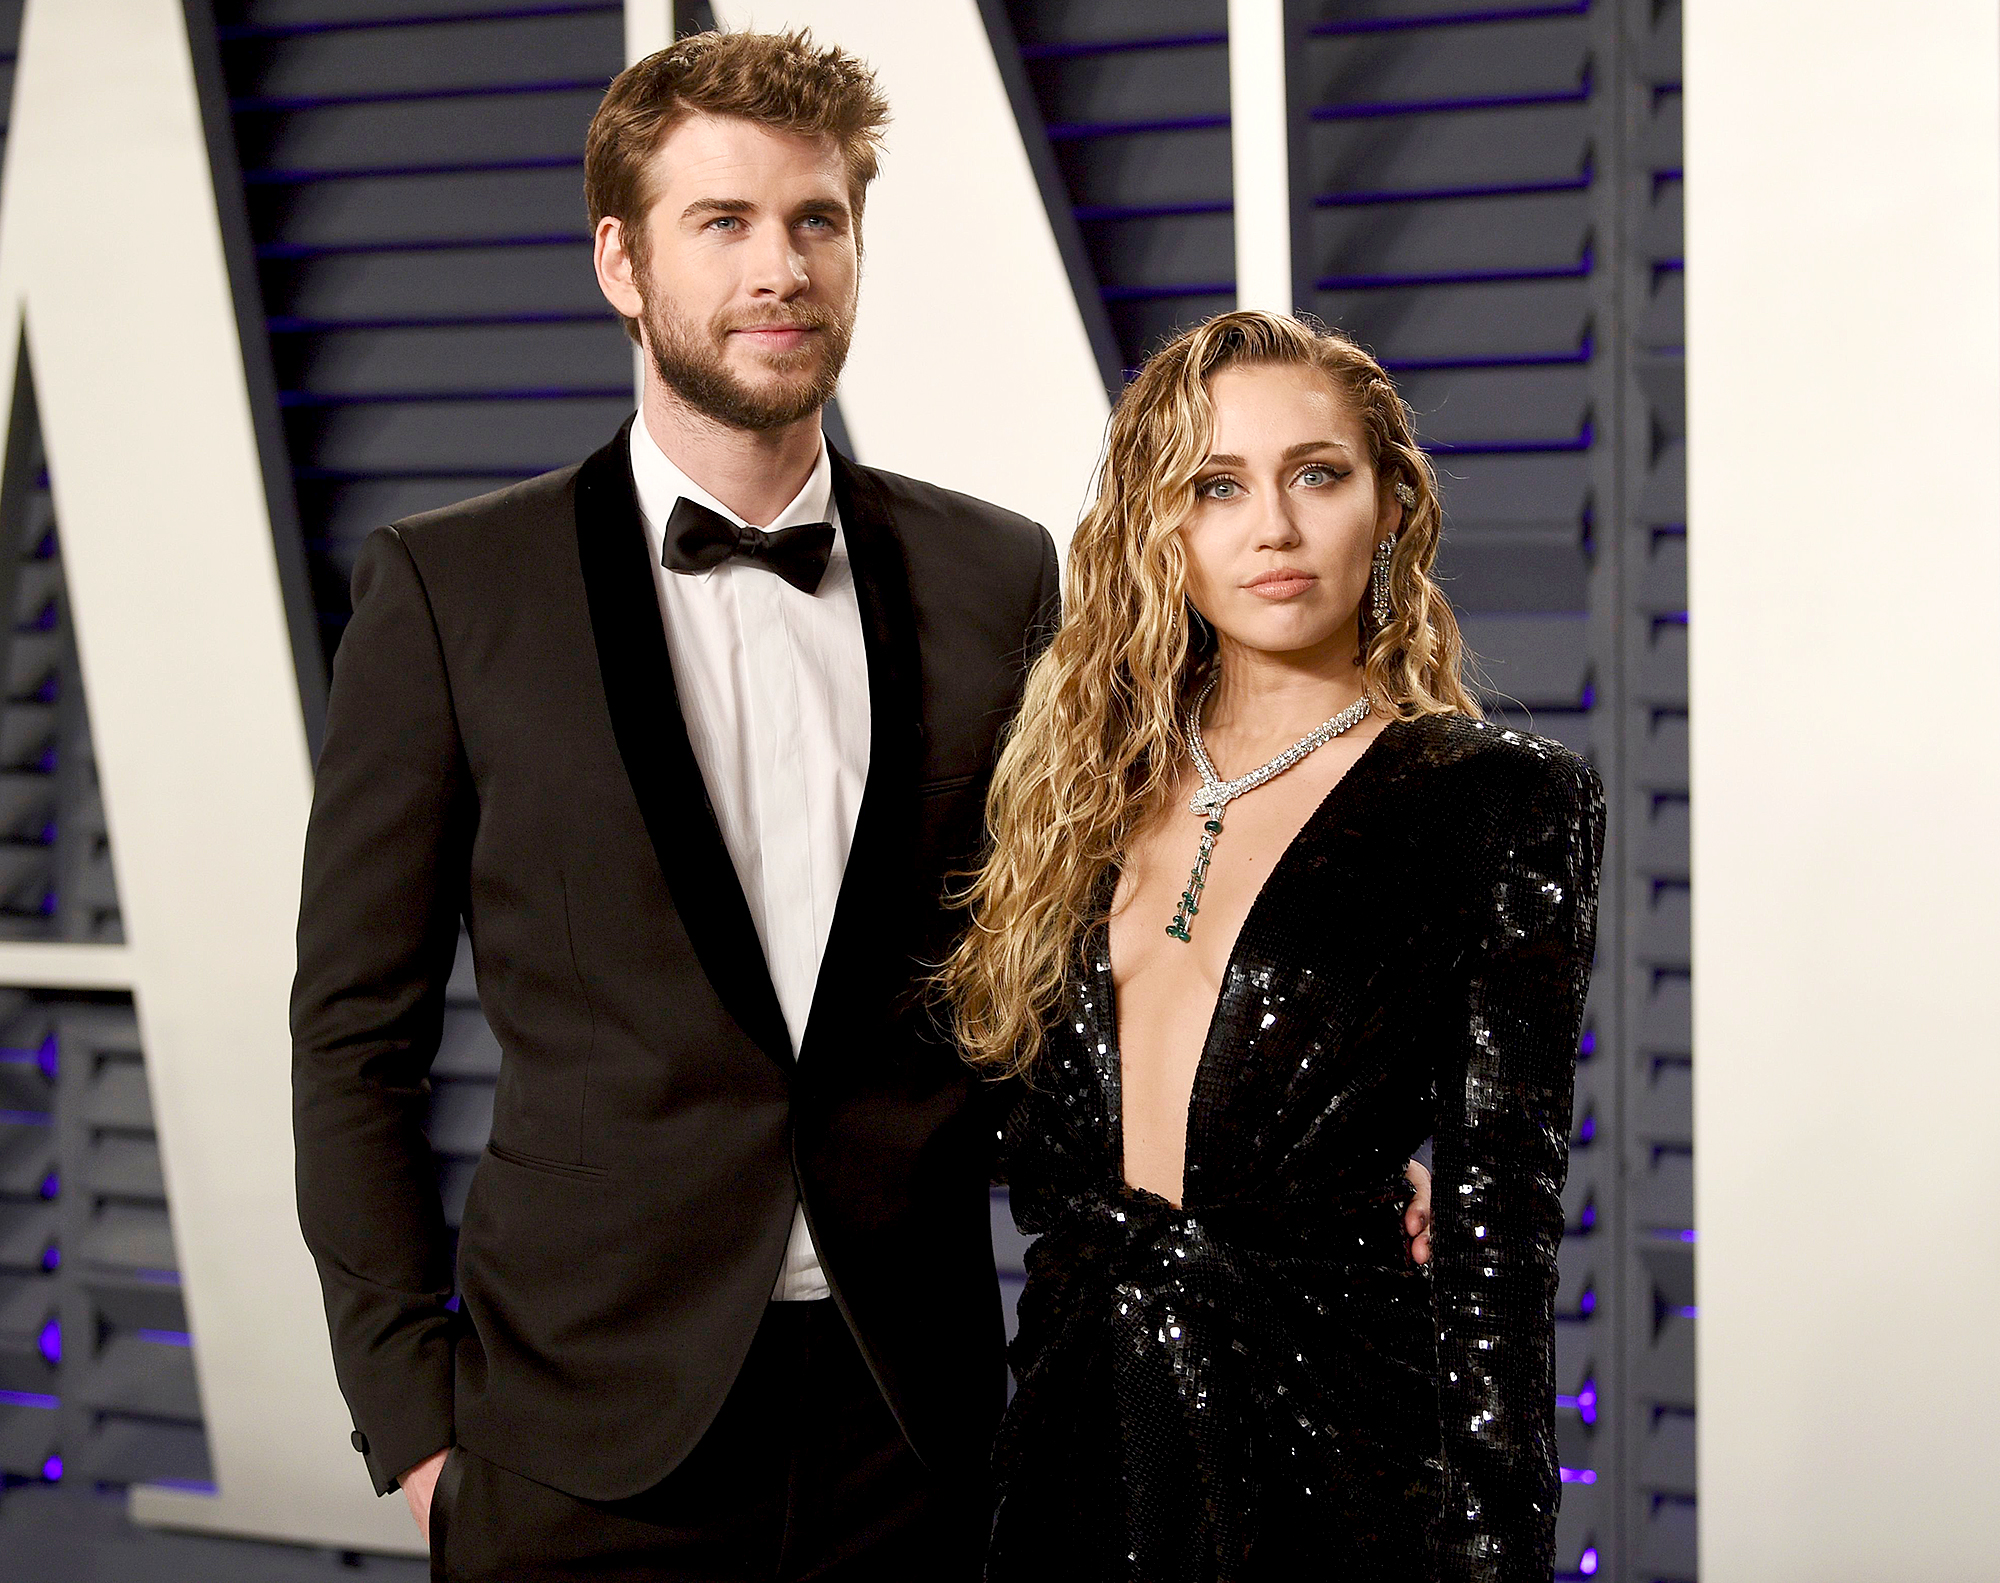 Liam-Hemsworth-'Quickly'-Filed-for-Divorce-From-Miley-Cyrus